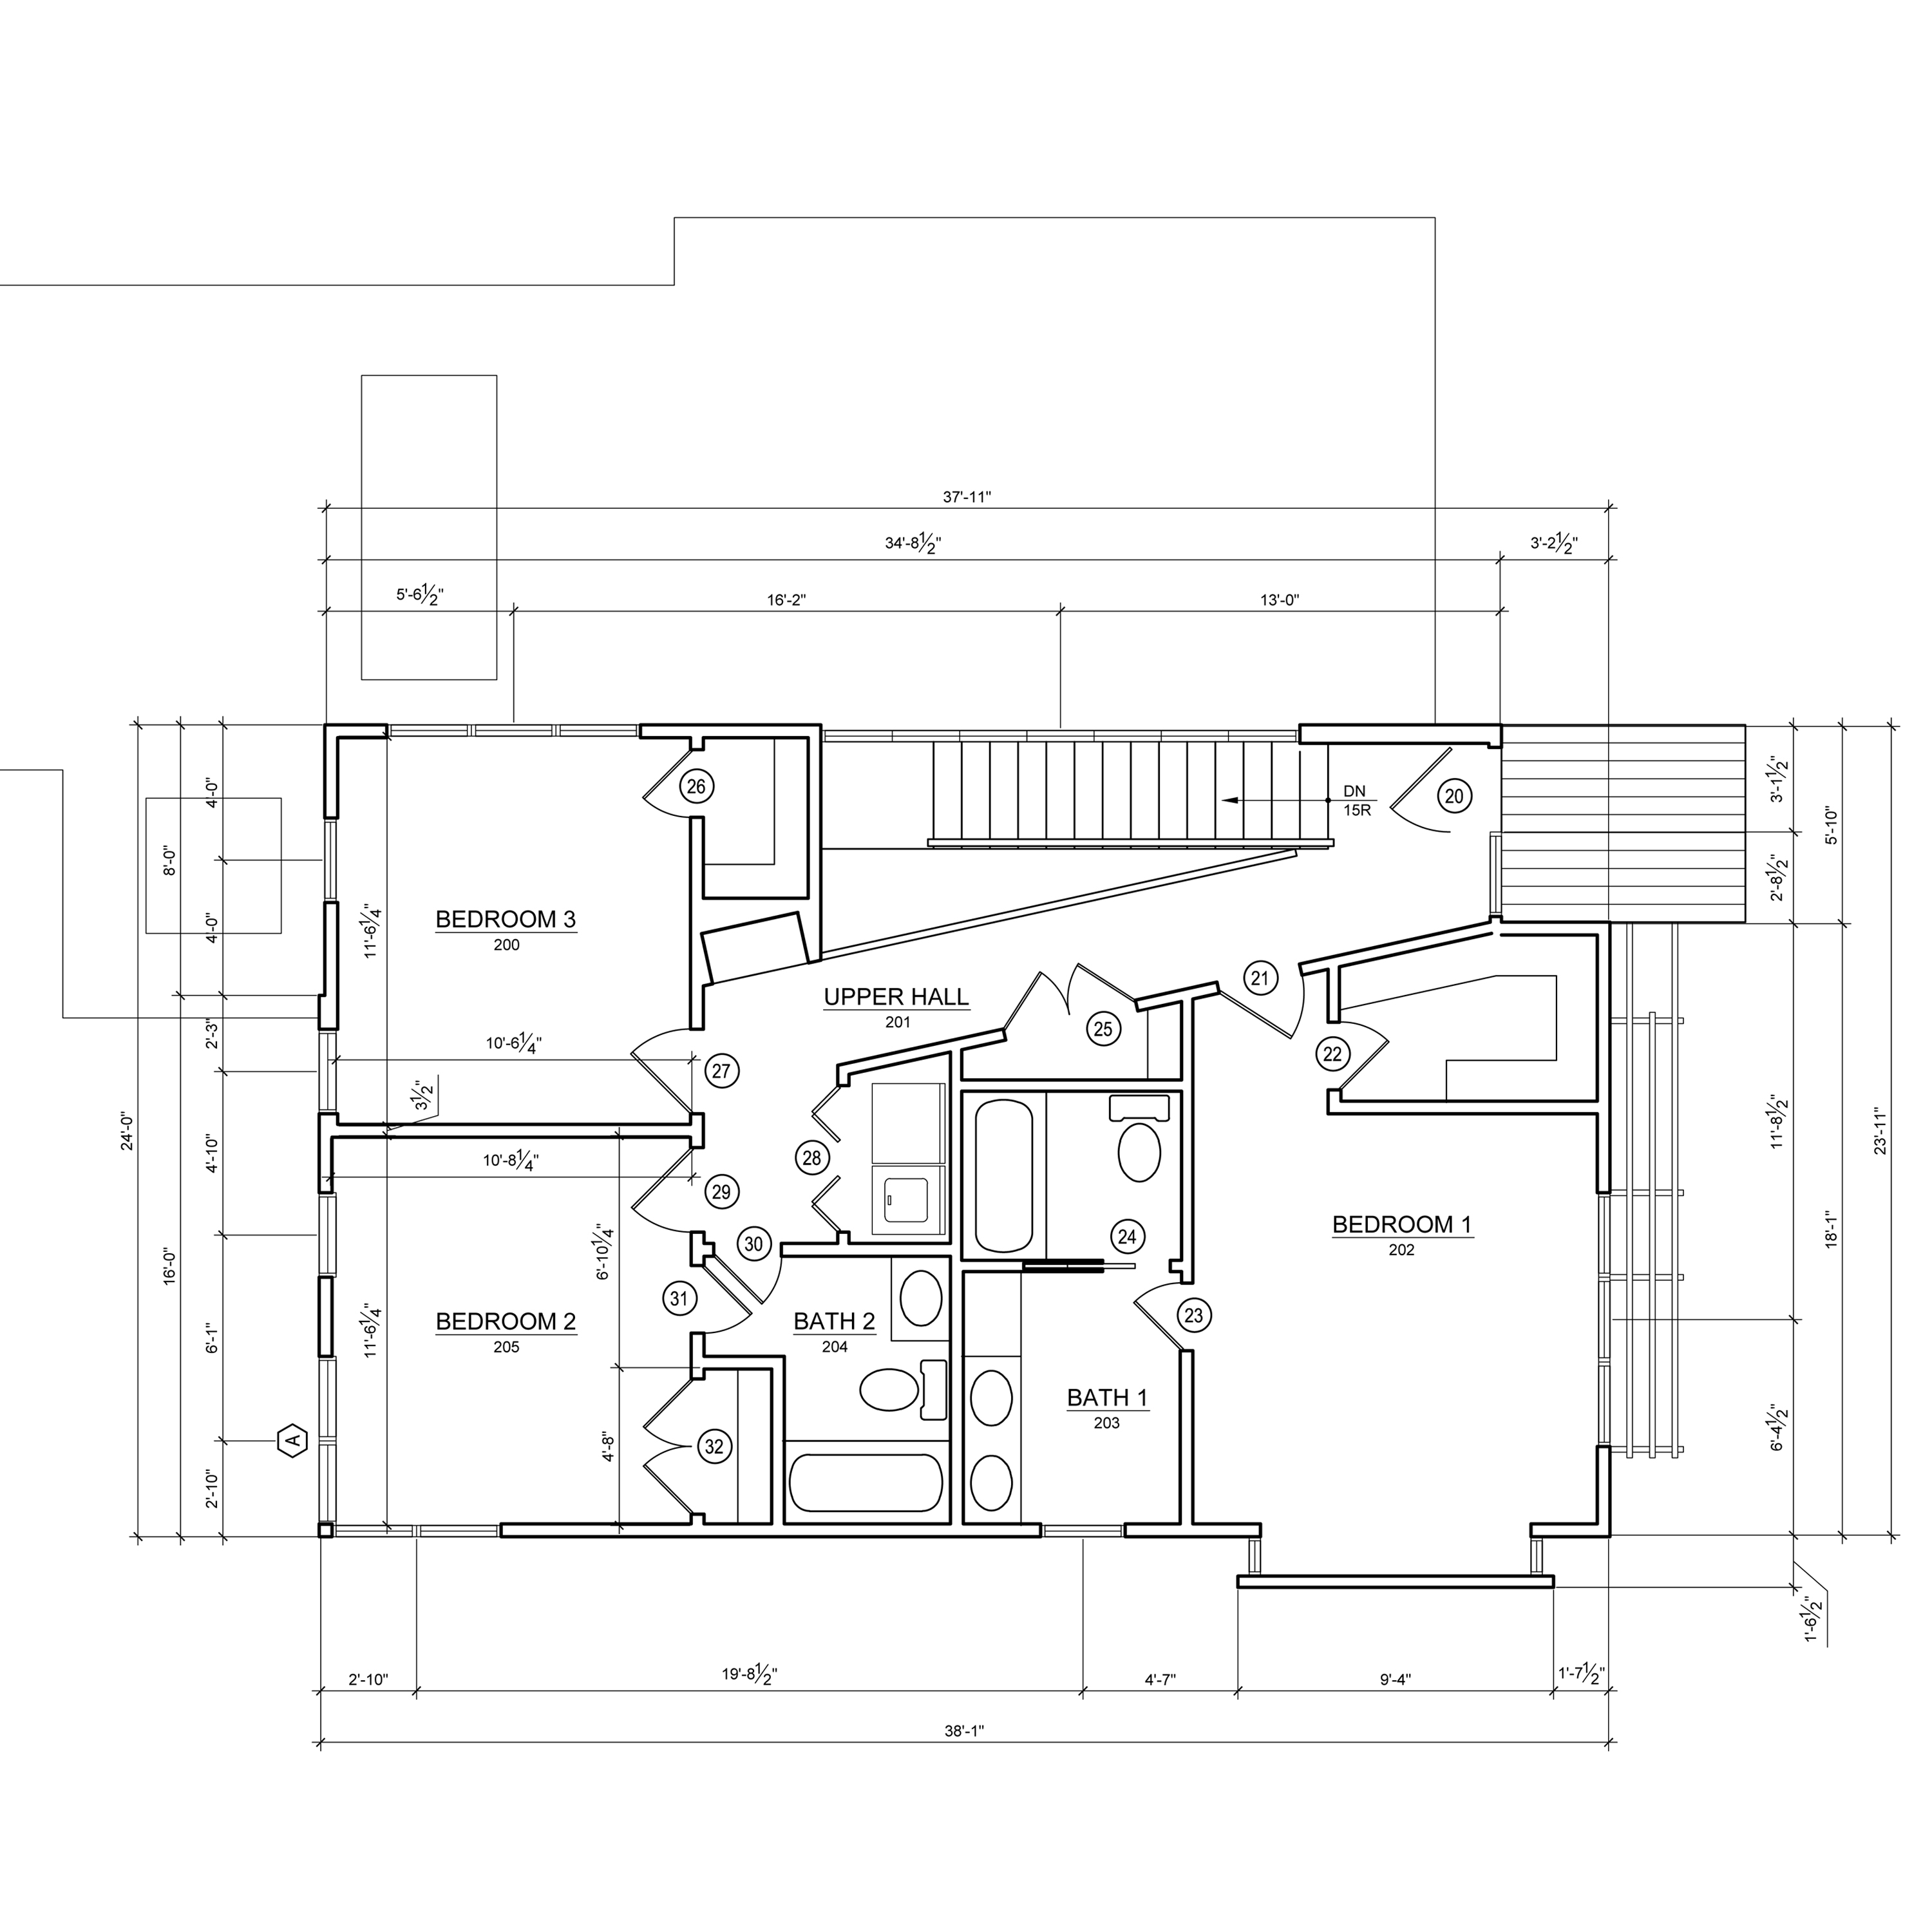 The Design Development Drawings Illustrate And Describe The Refinement Of The Design Of Your House They Establish The Scope Relationships Forms Size